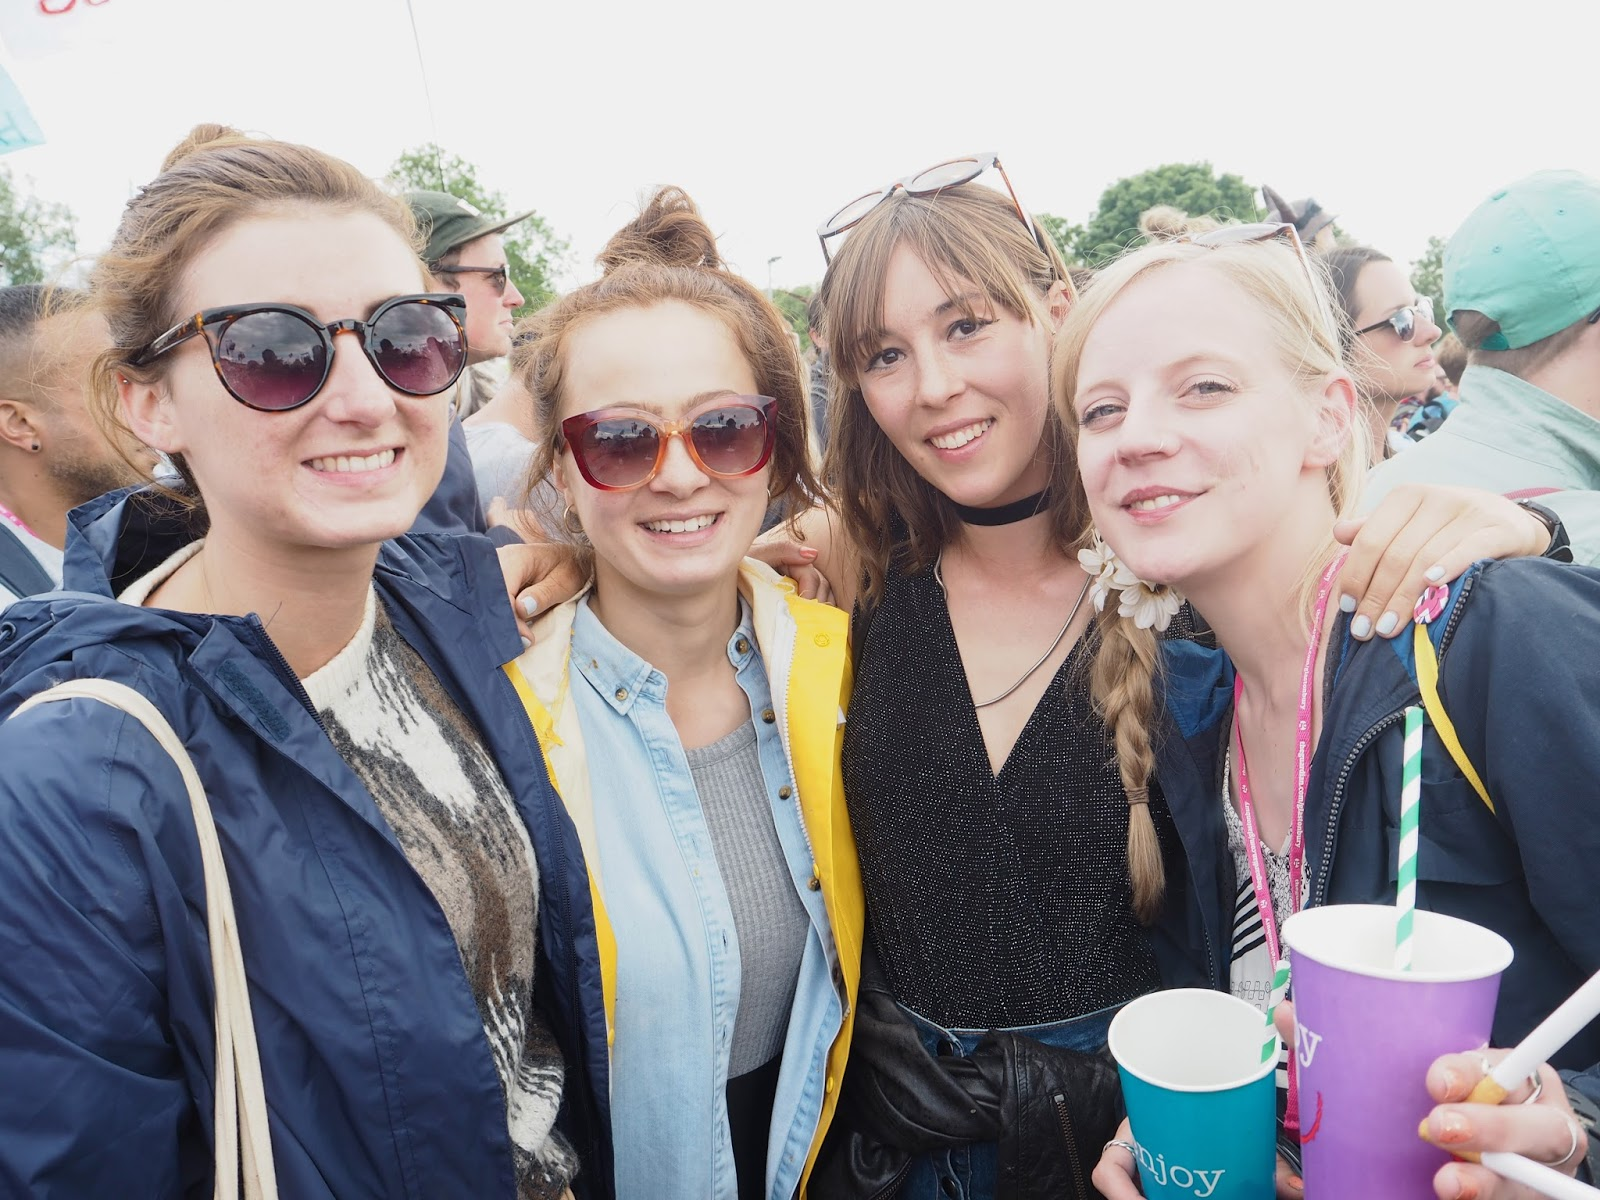 Glastonbury Festival 2016 photo diary